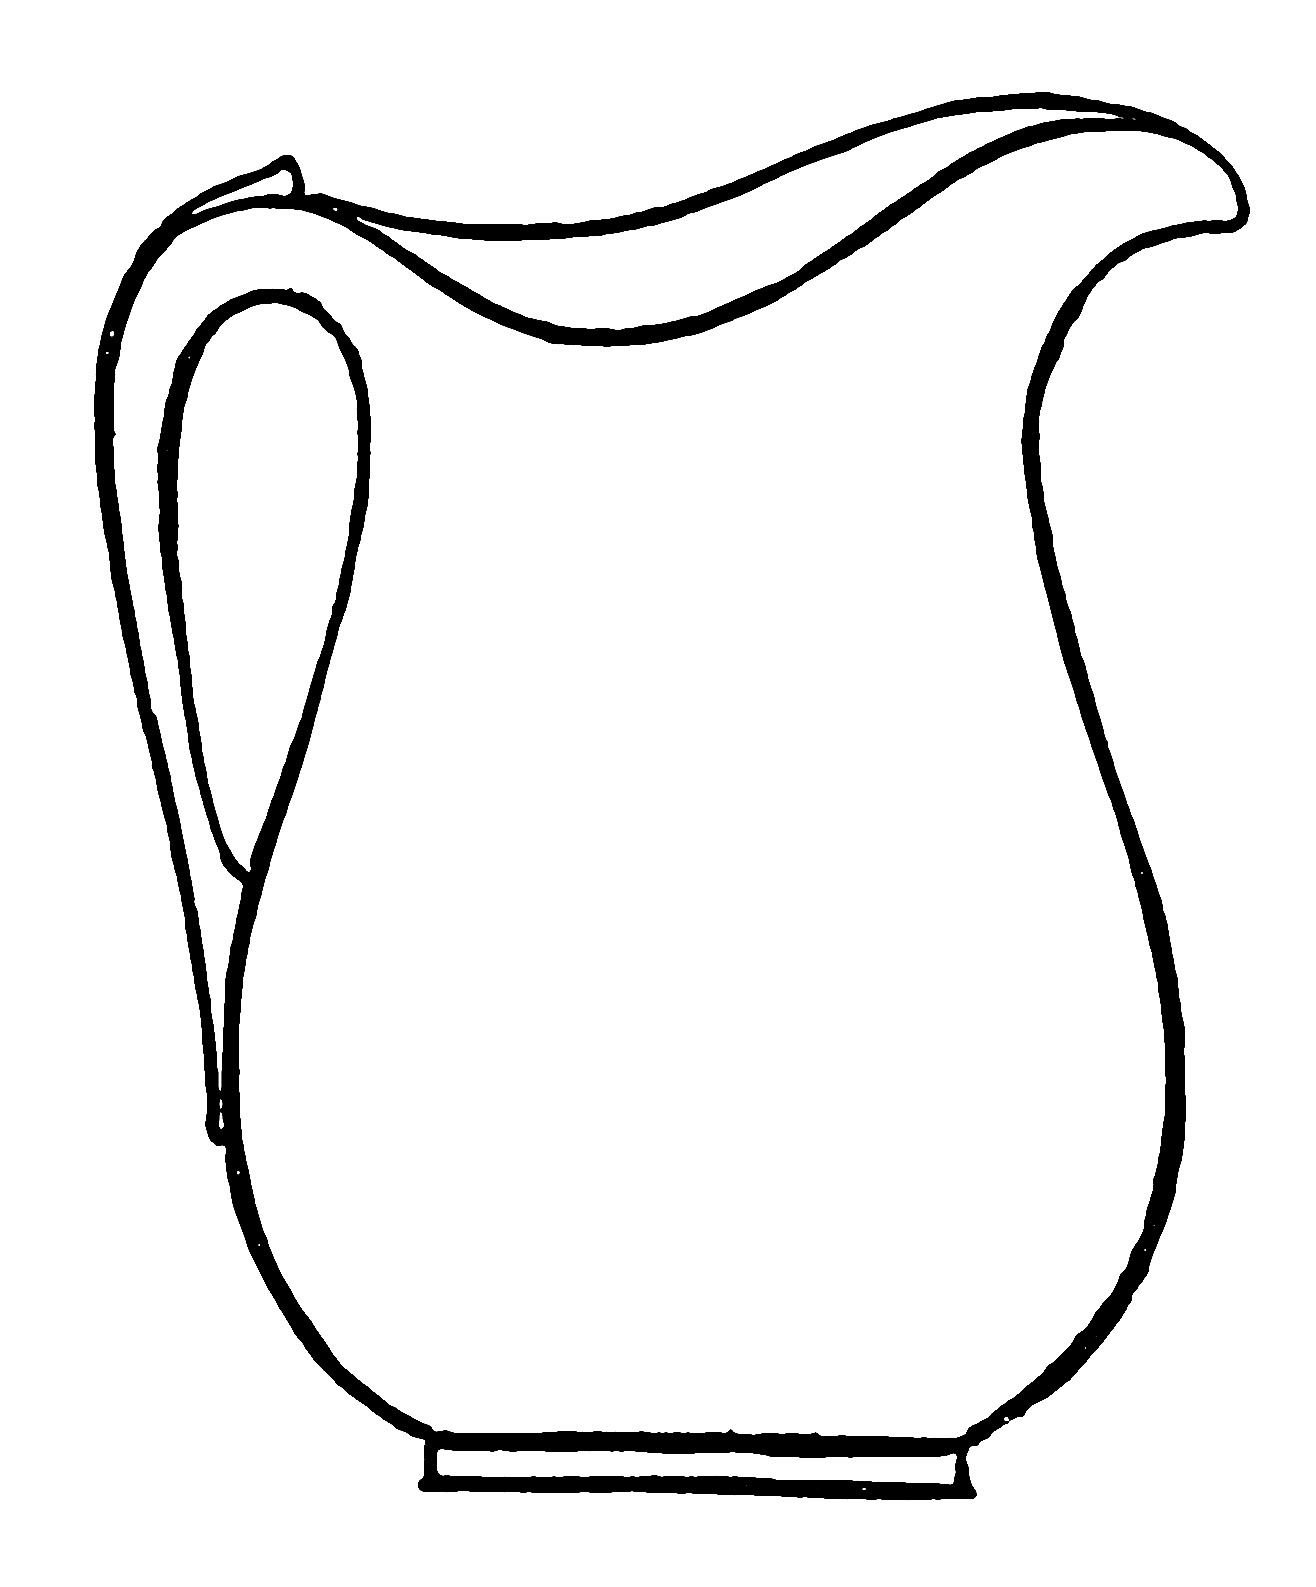 hight resolution of vintage advertising clip art ironstone pitcher the graphics fairy